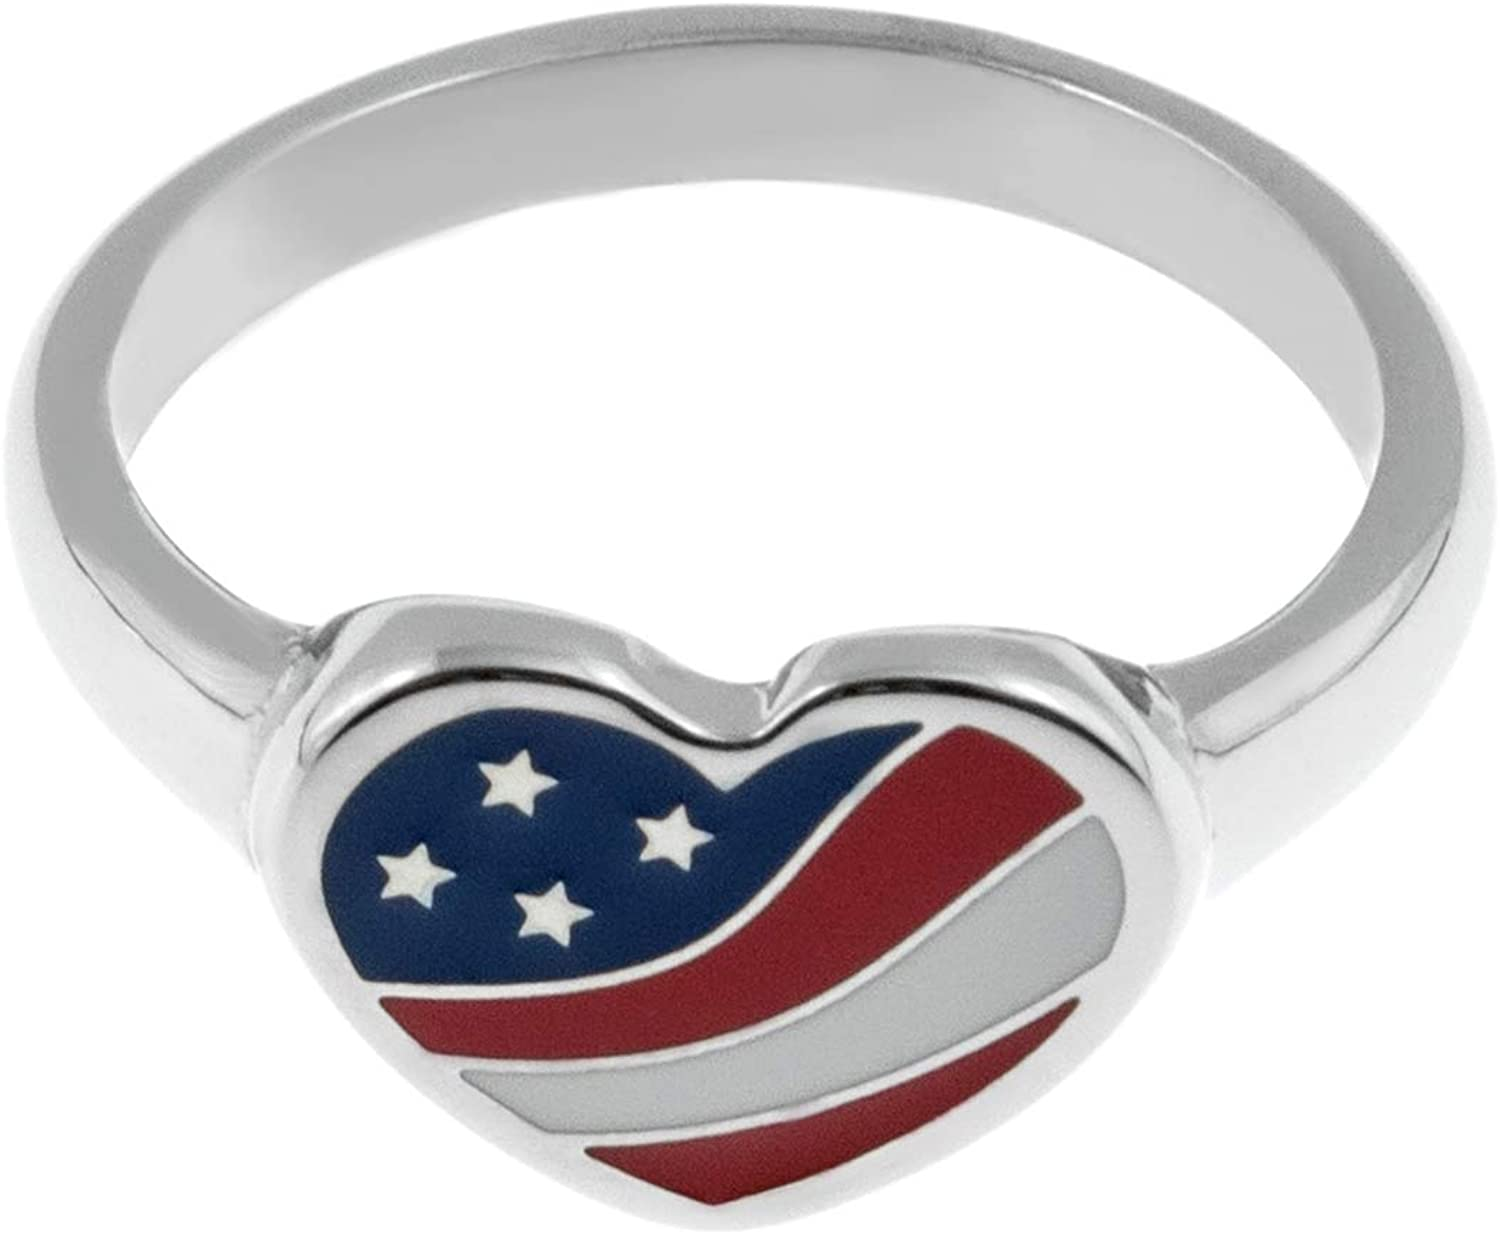 Joyful Sentiments Patriotic Attention Deluxe brand Jewelry Steel Fla American Stainless